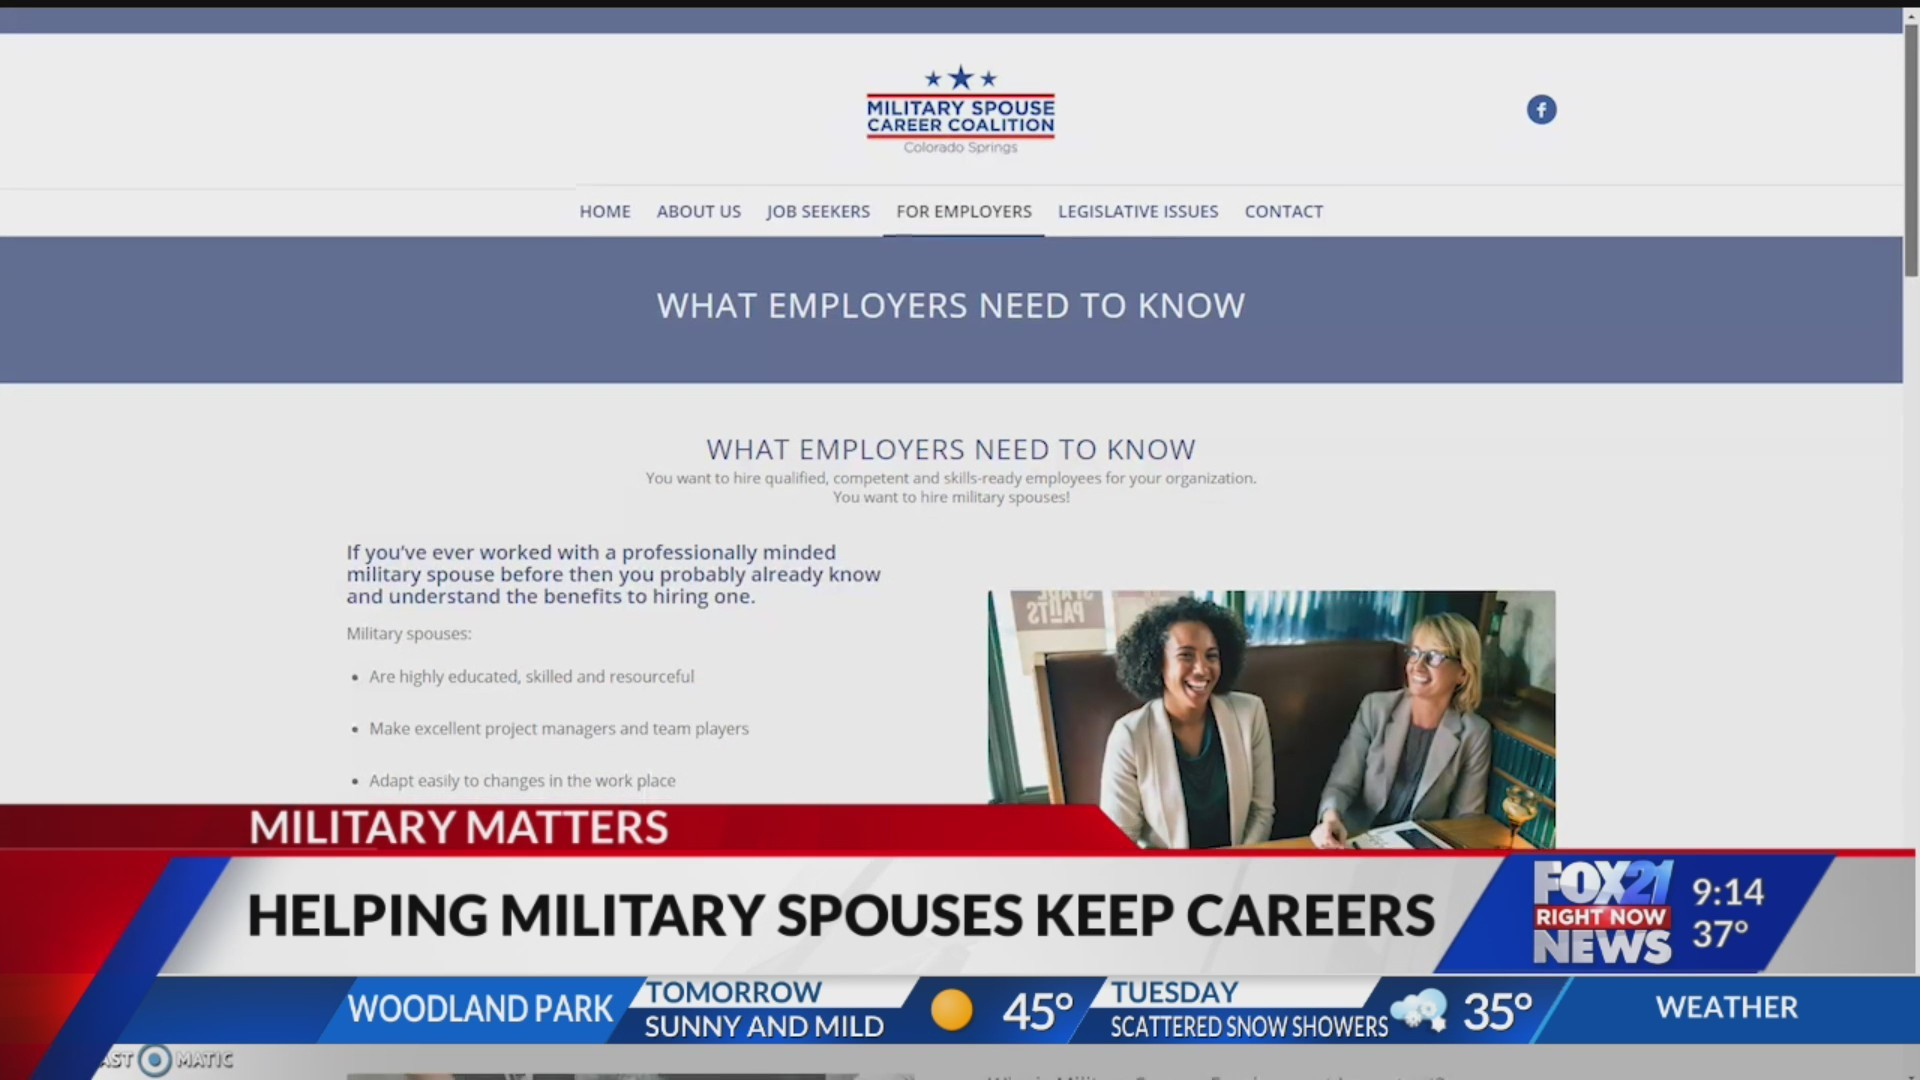 Organization paving the way for military spouse's careers